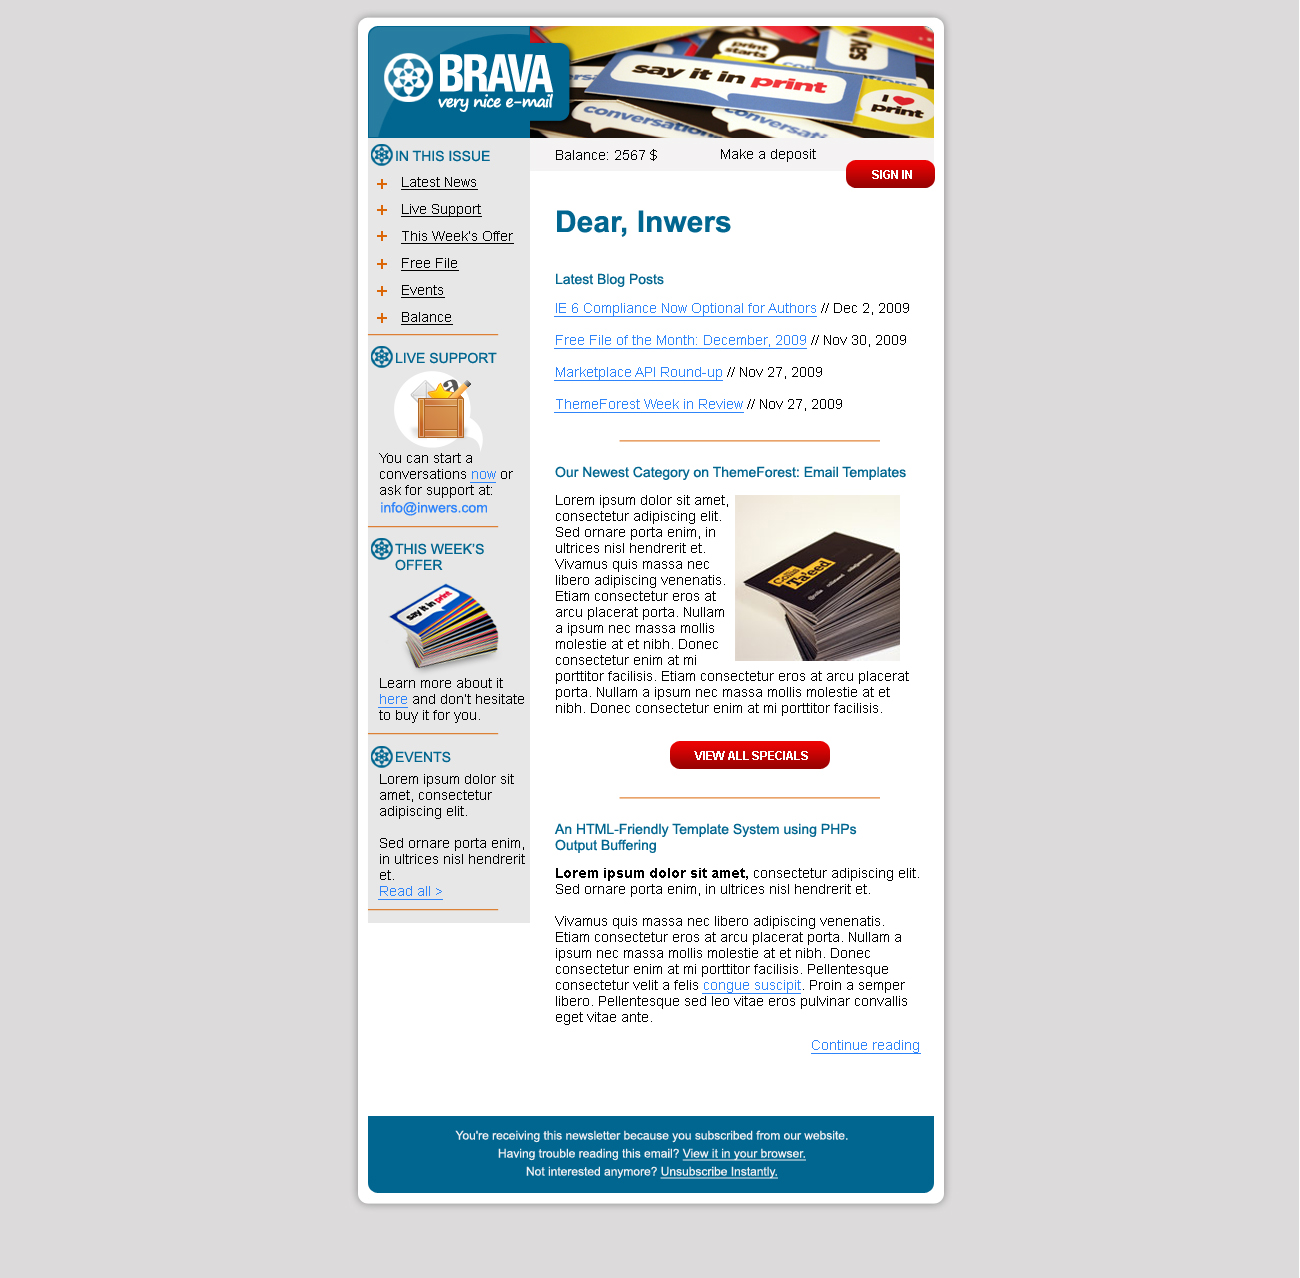 BRAVA - a corporate nice e-mail - Inwers - Brava Blue